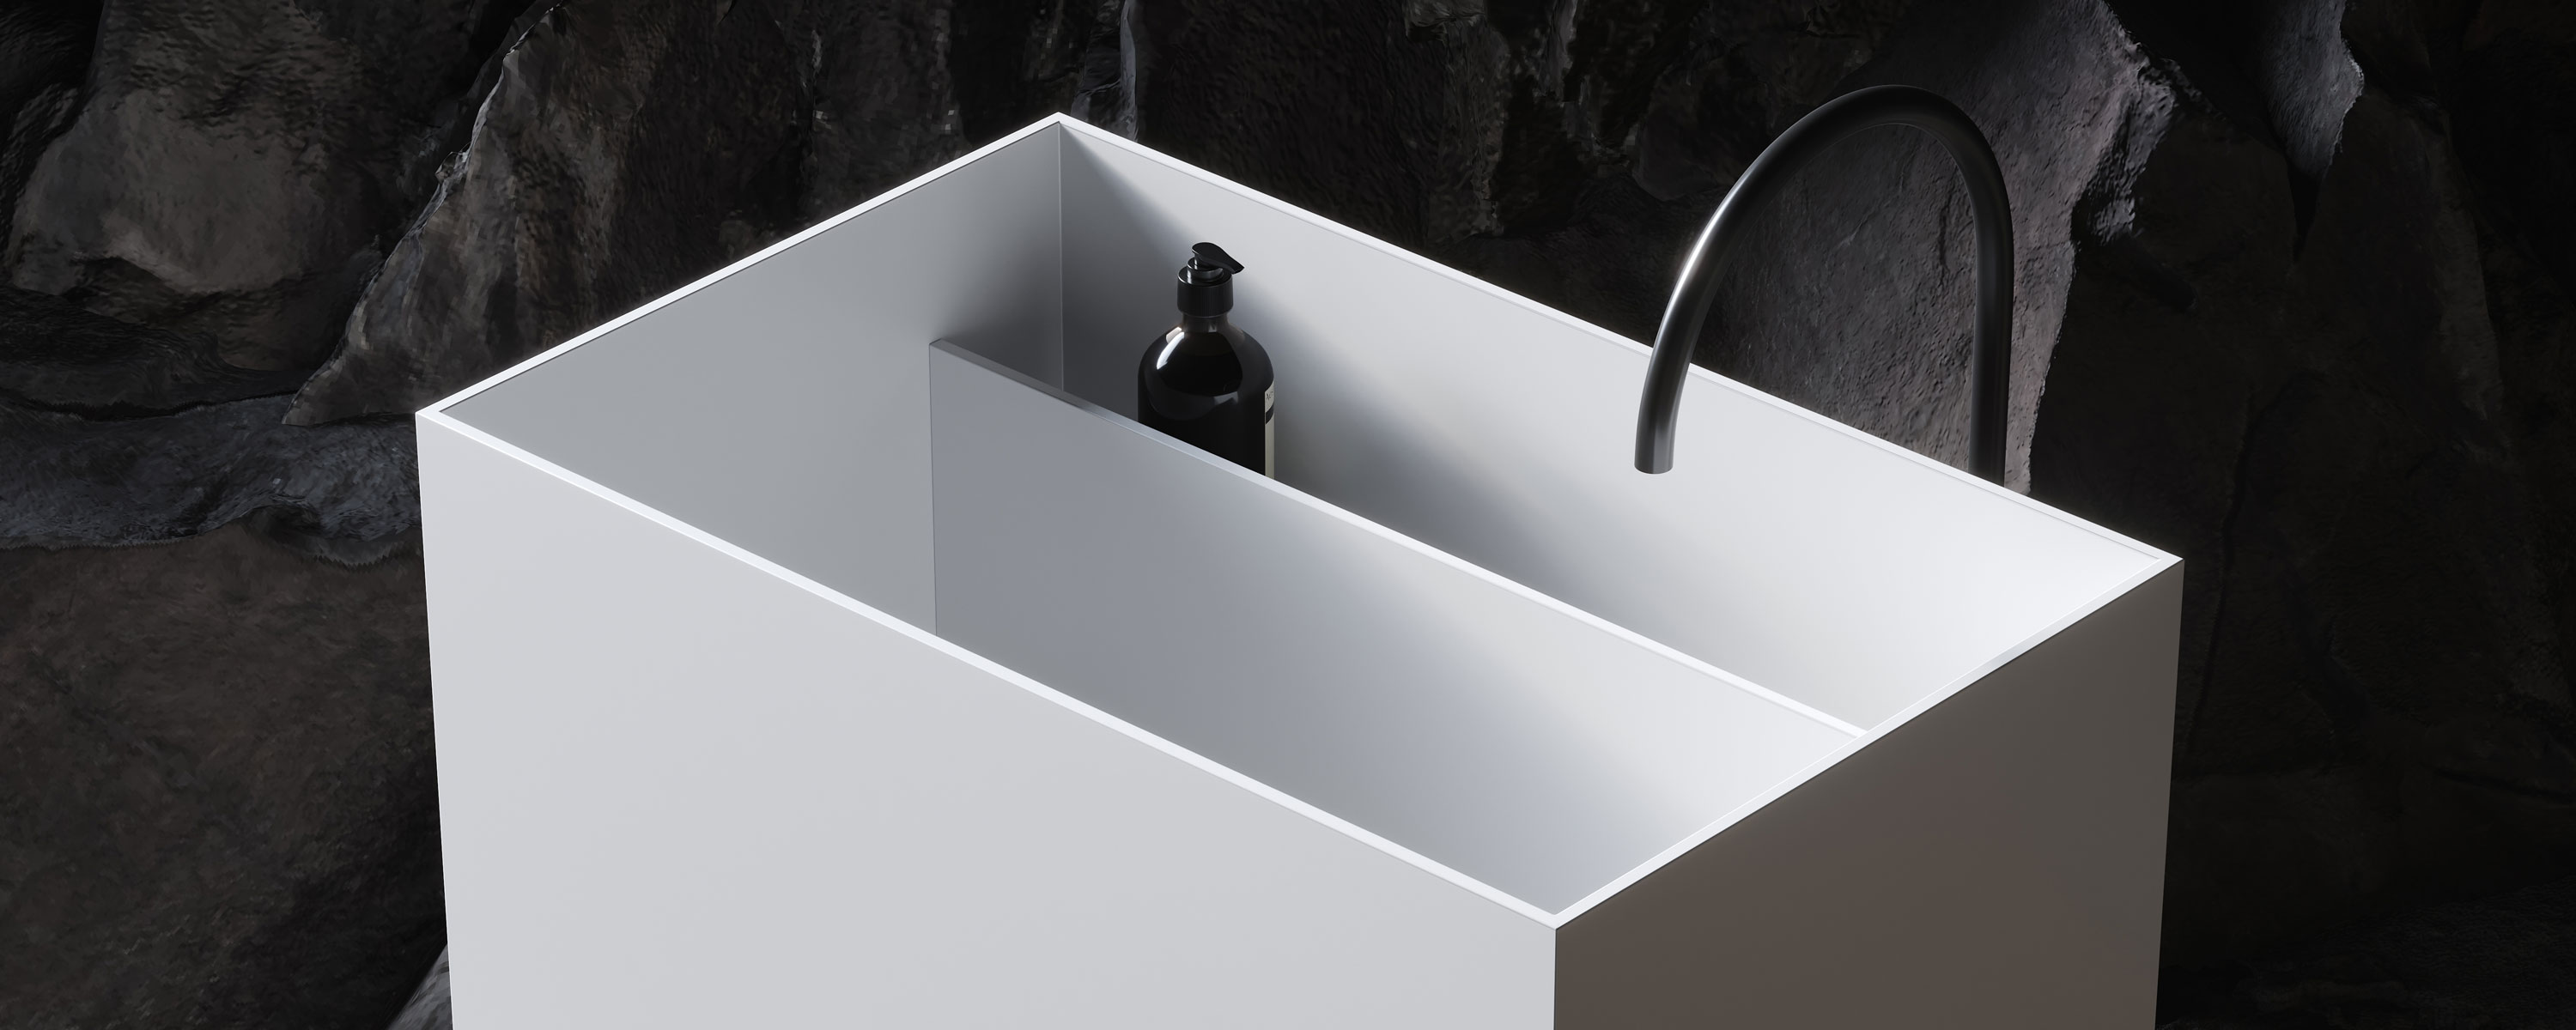 minimall_one_on_the_edge_bathtub_washbasin_05